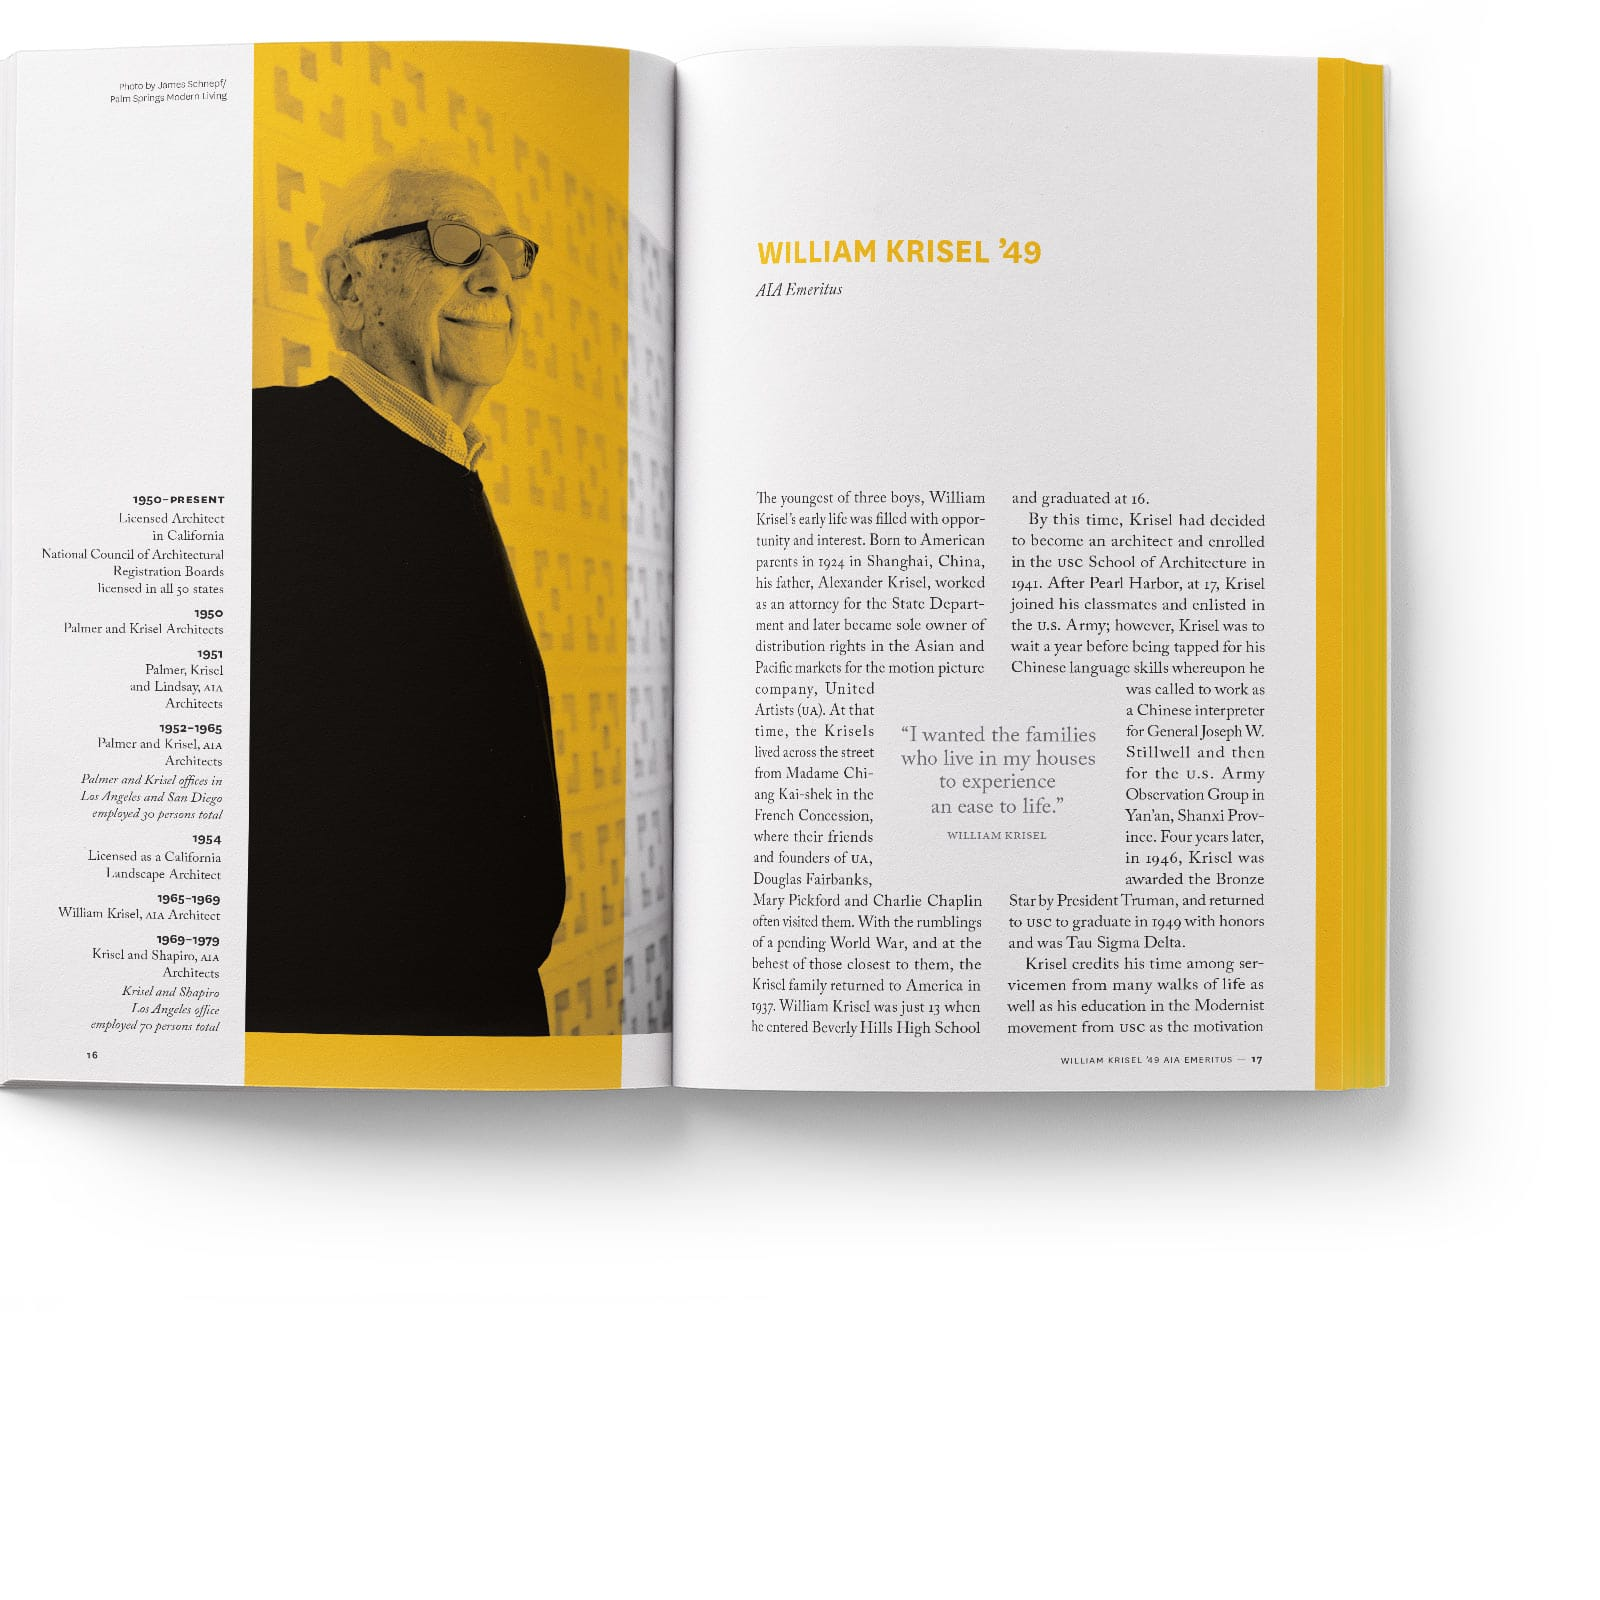 book spread with an image of modernist architect William Krisel